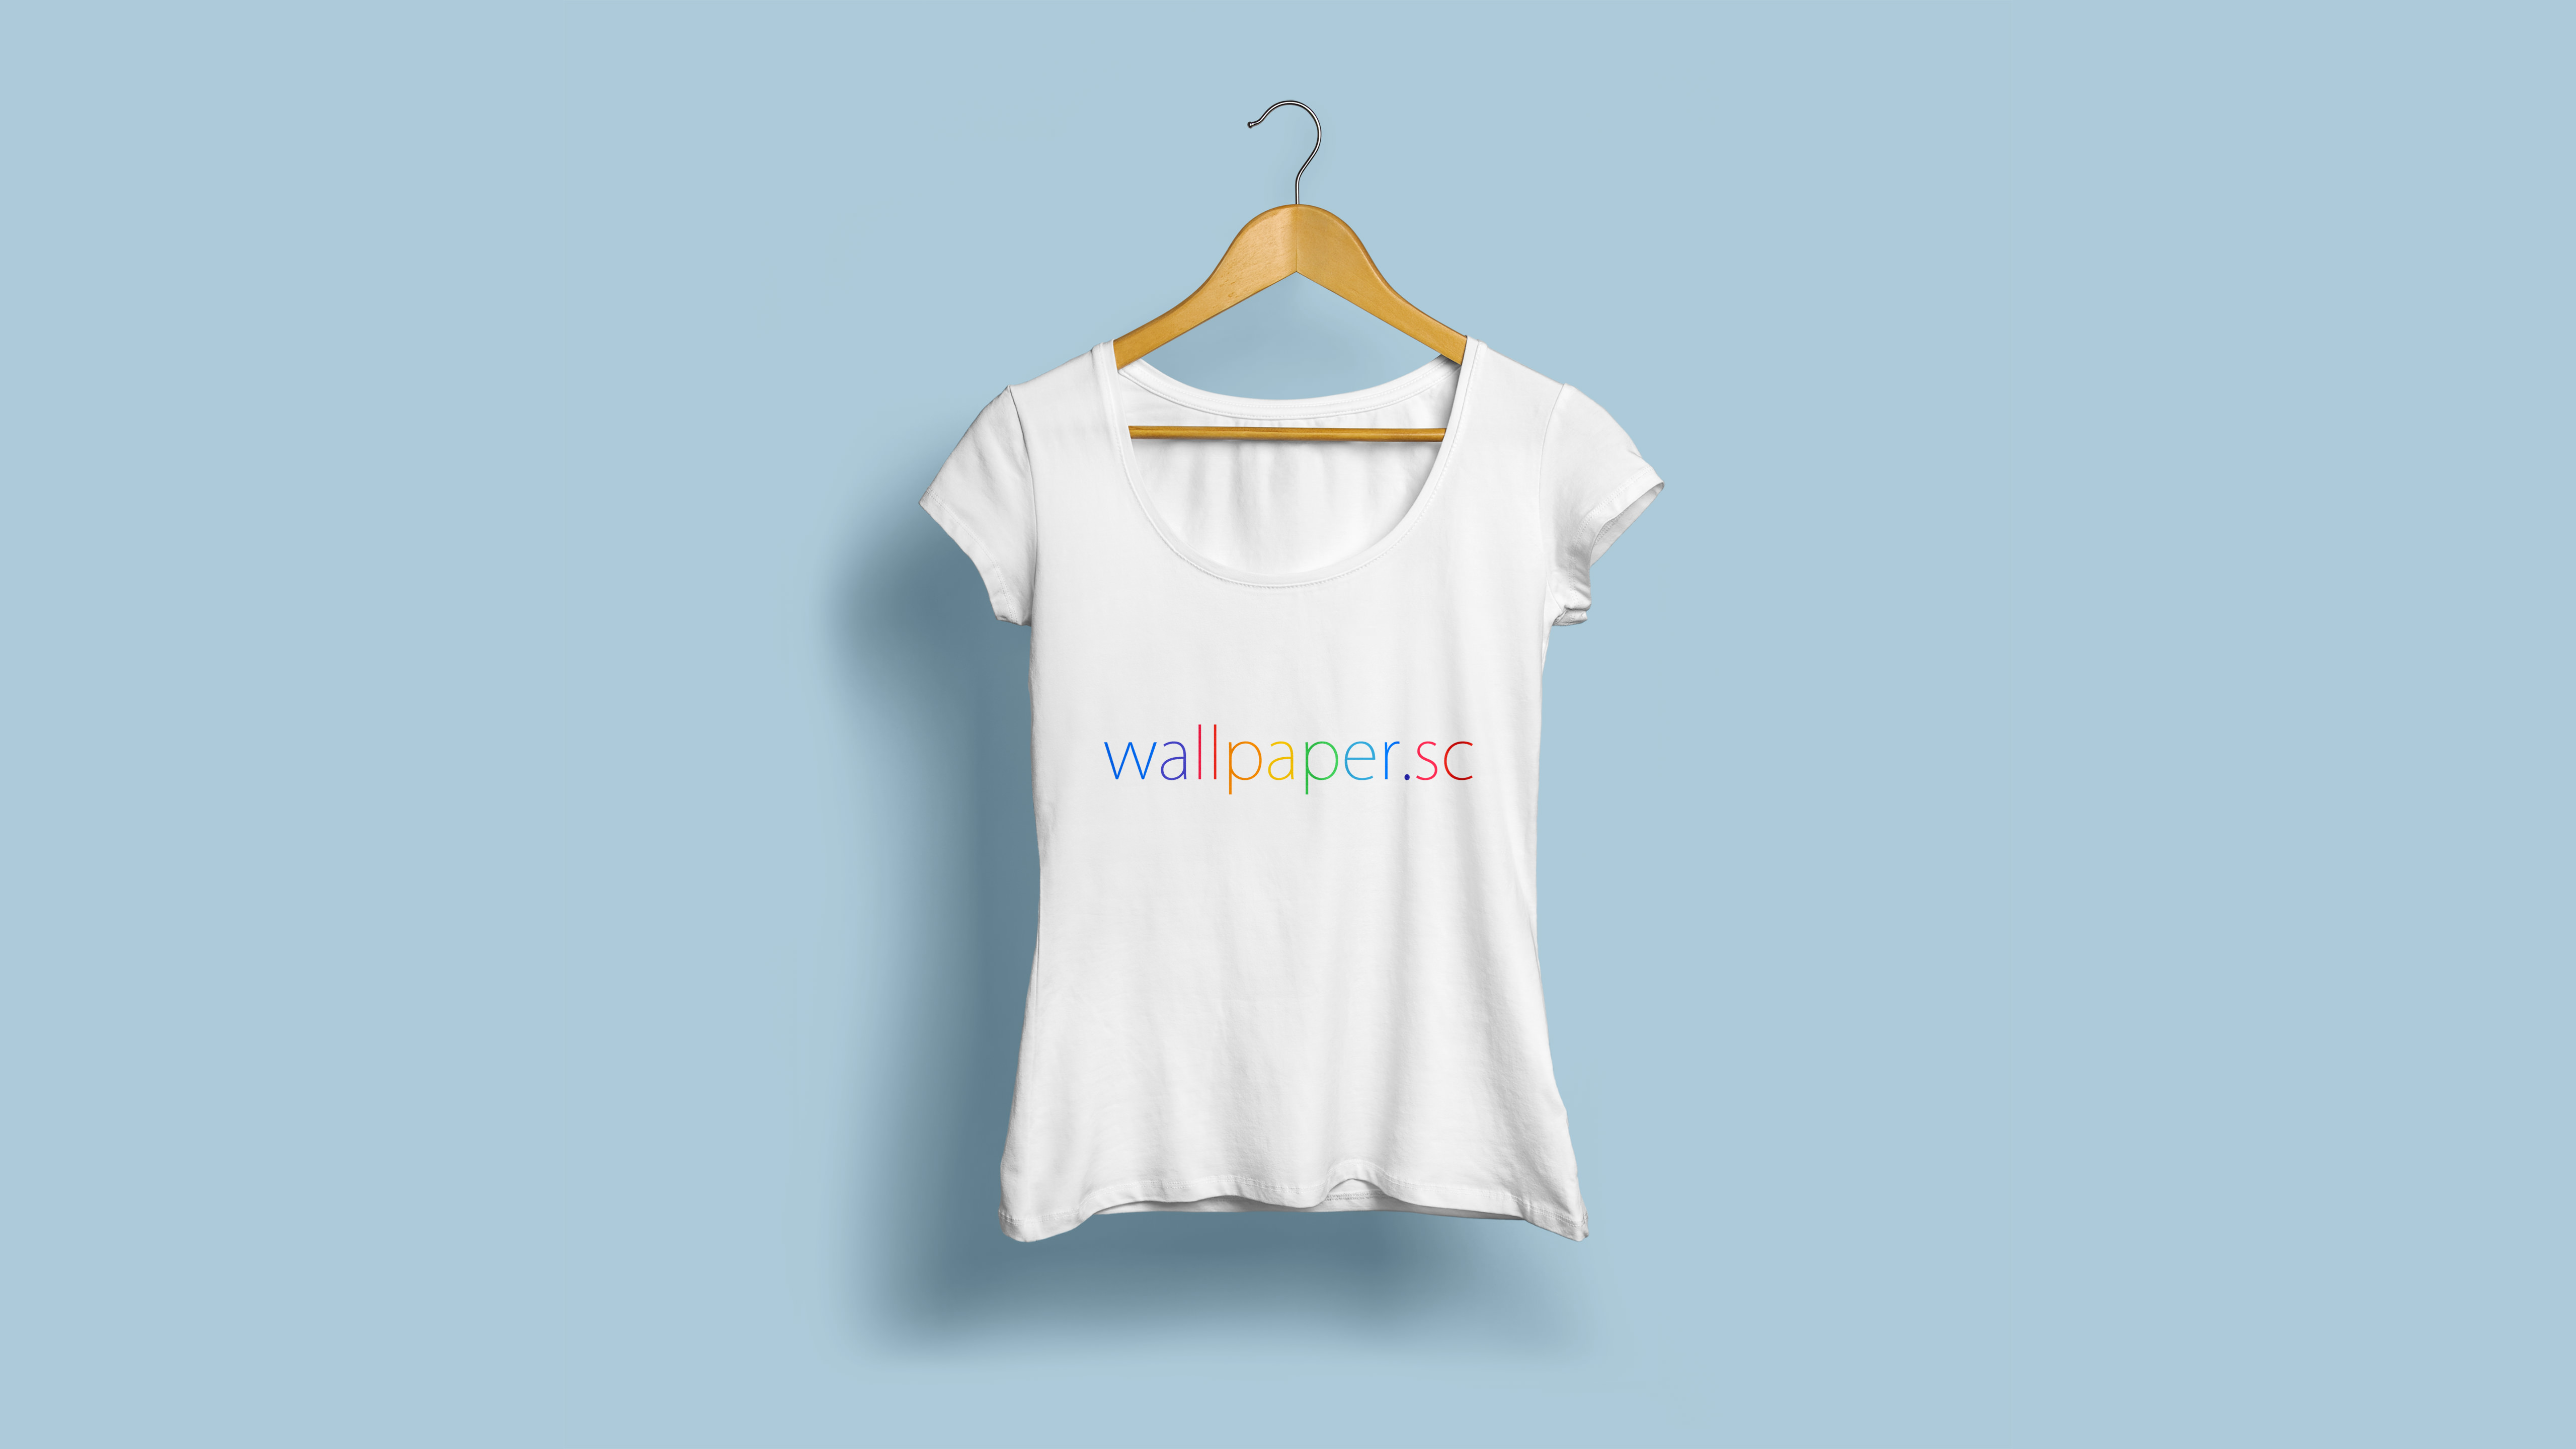 Wallpaper T Shirt